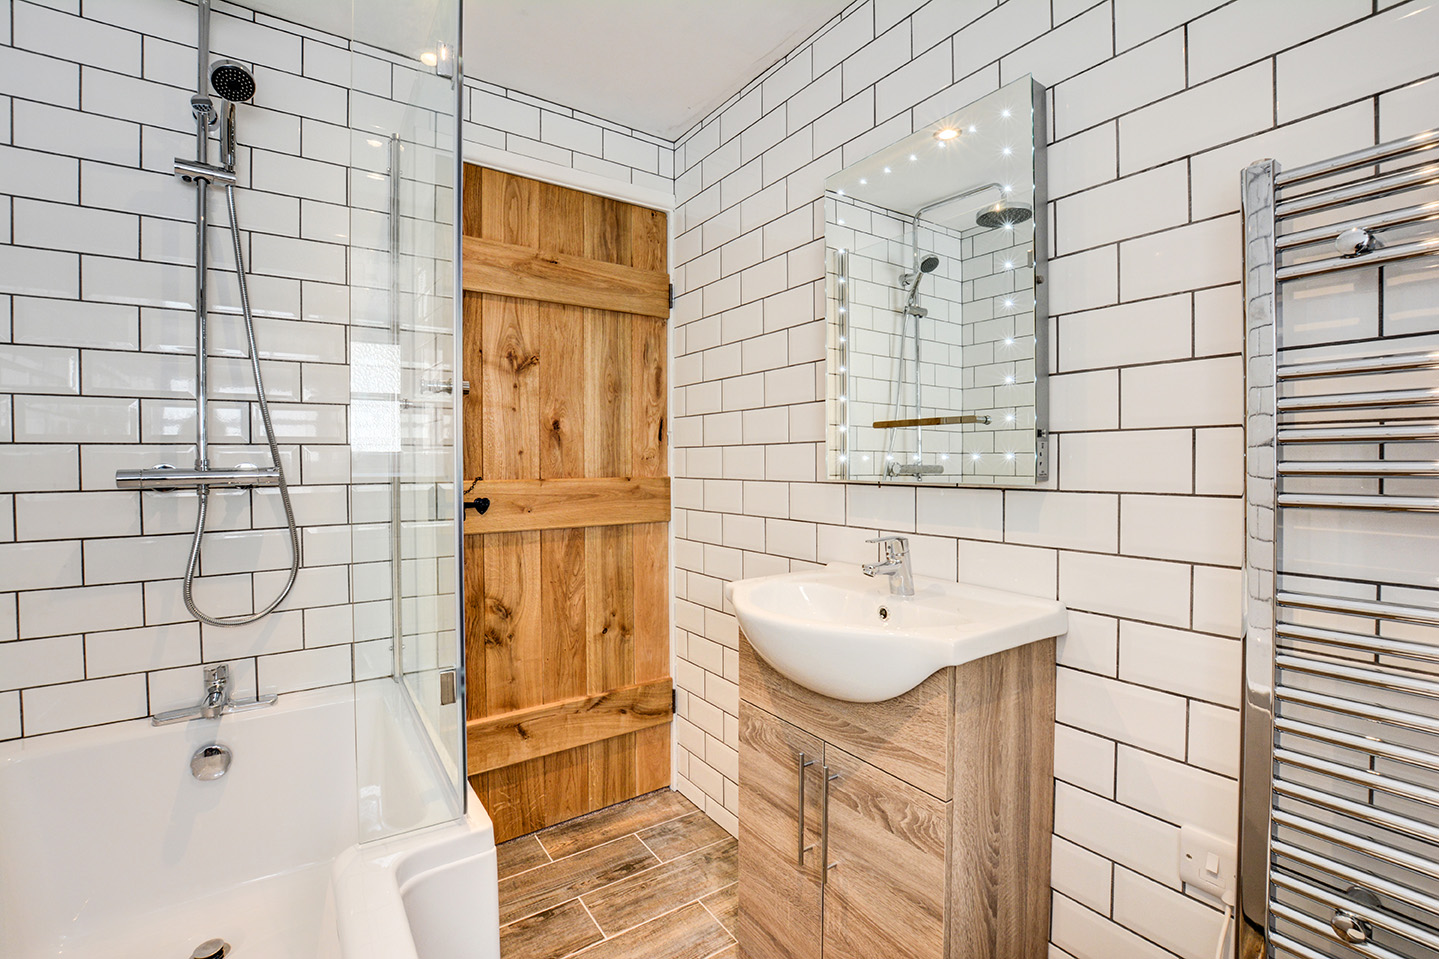 The bathroom at Jingles luxury self catering holiday cottage at Penrose Burden in North Cornwall near Bodmin Moor01.jpg